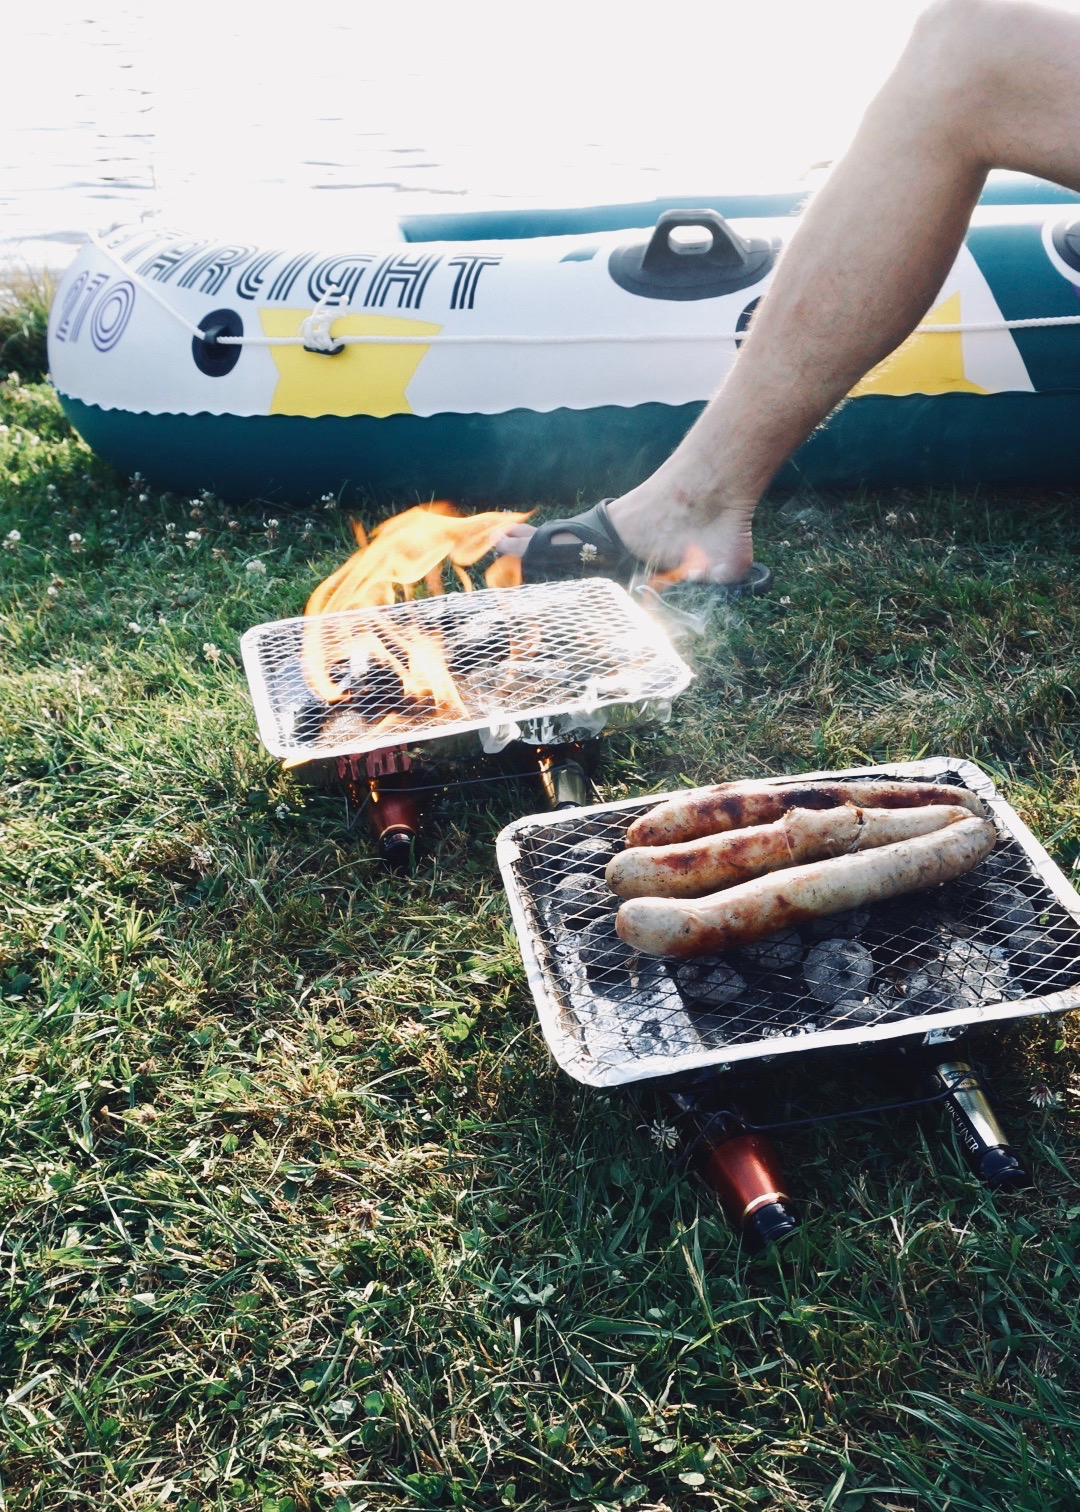 Camping and grilling using disposable grill at the lake in Germany